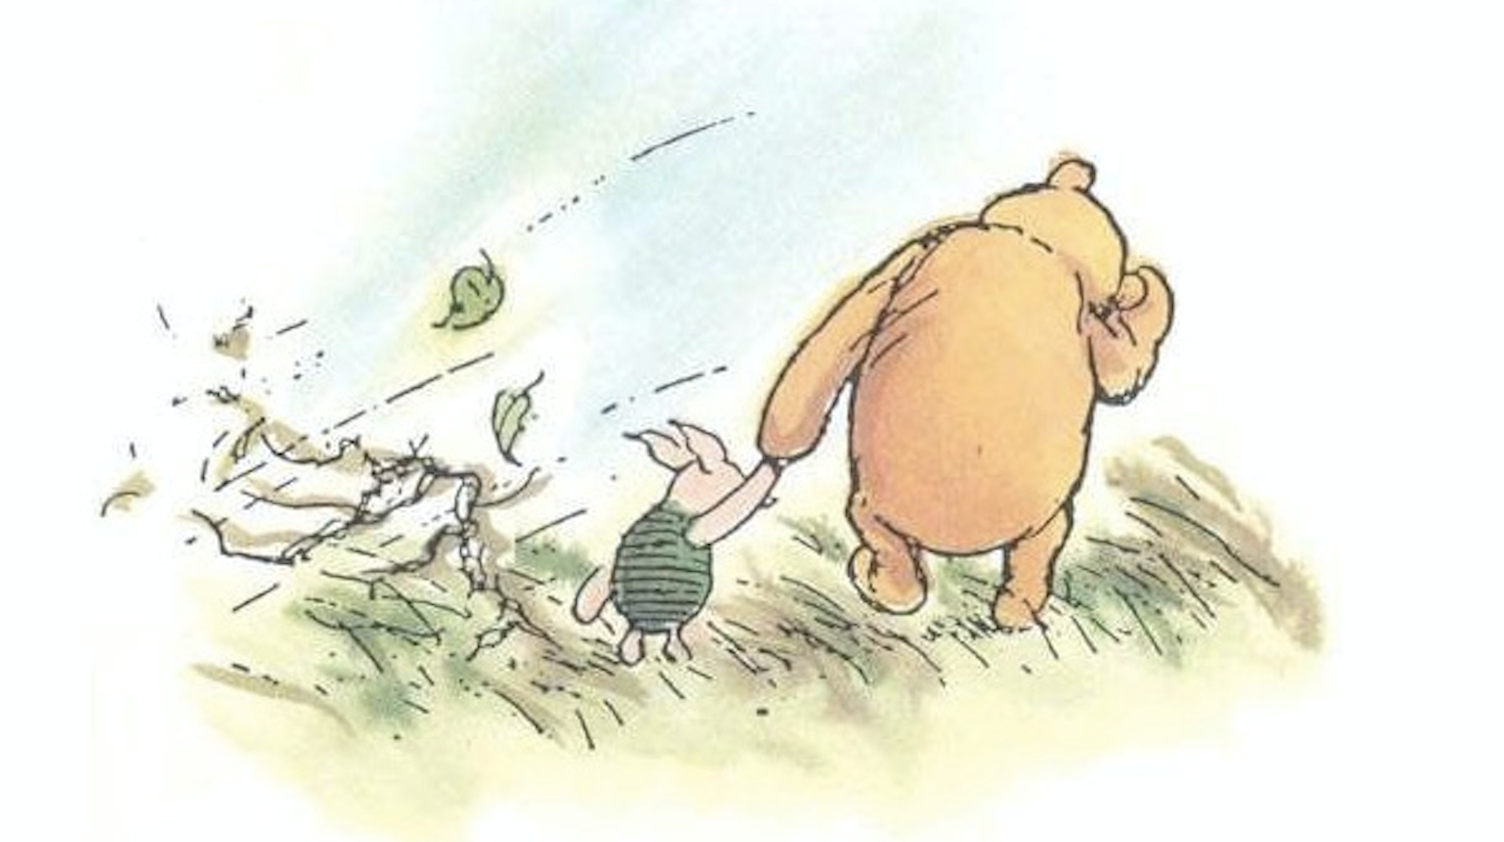 12 Most Beloved A.A. Milne Quotes to Take You Back to the Hundred Acre Wood  - Goodreads News & Interviews